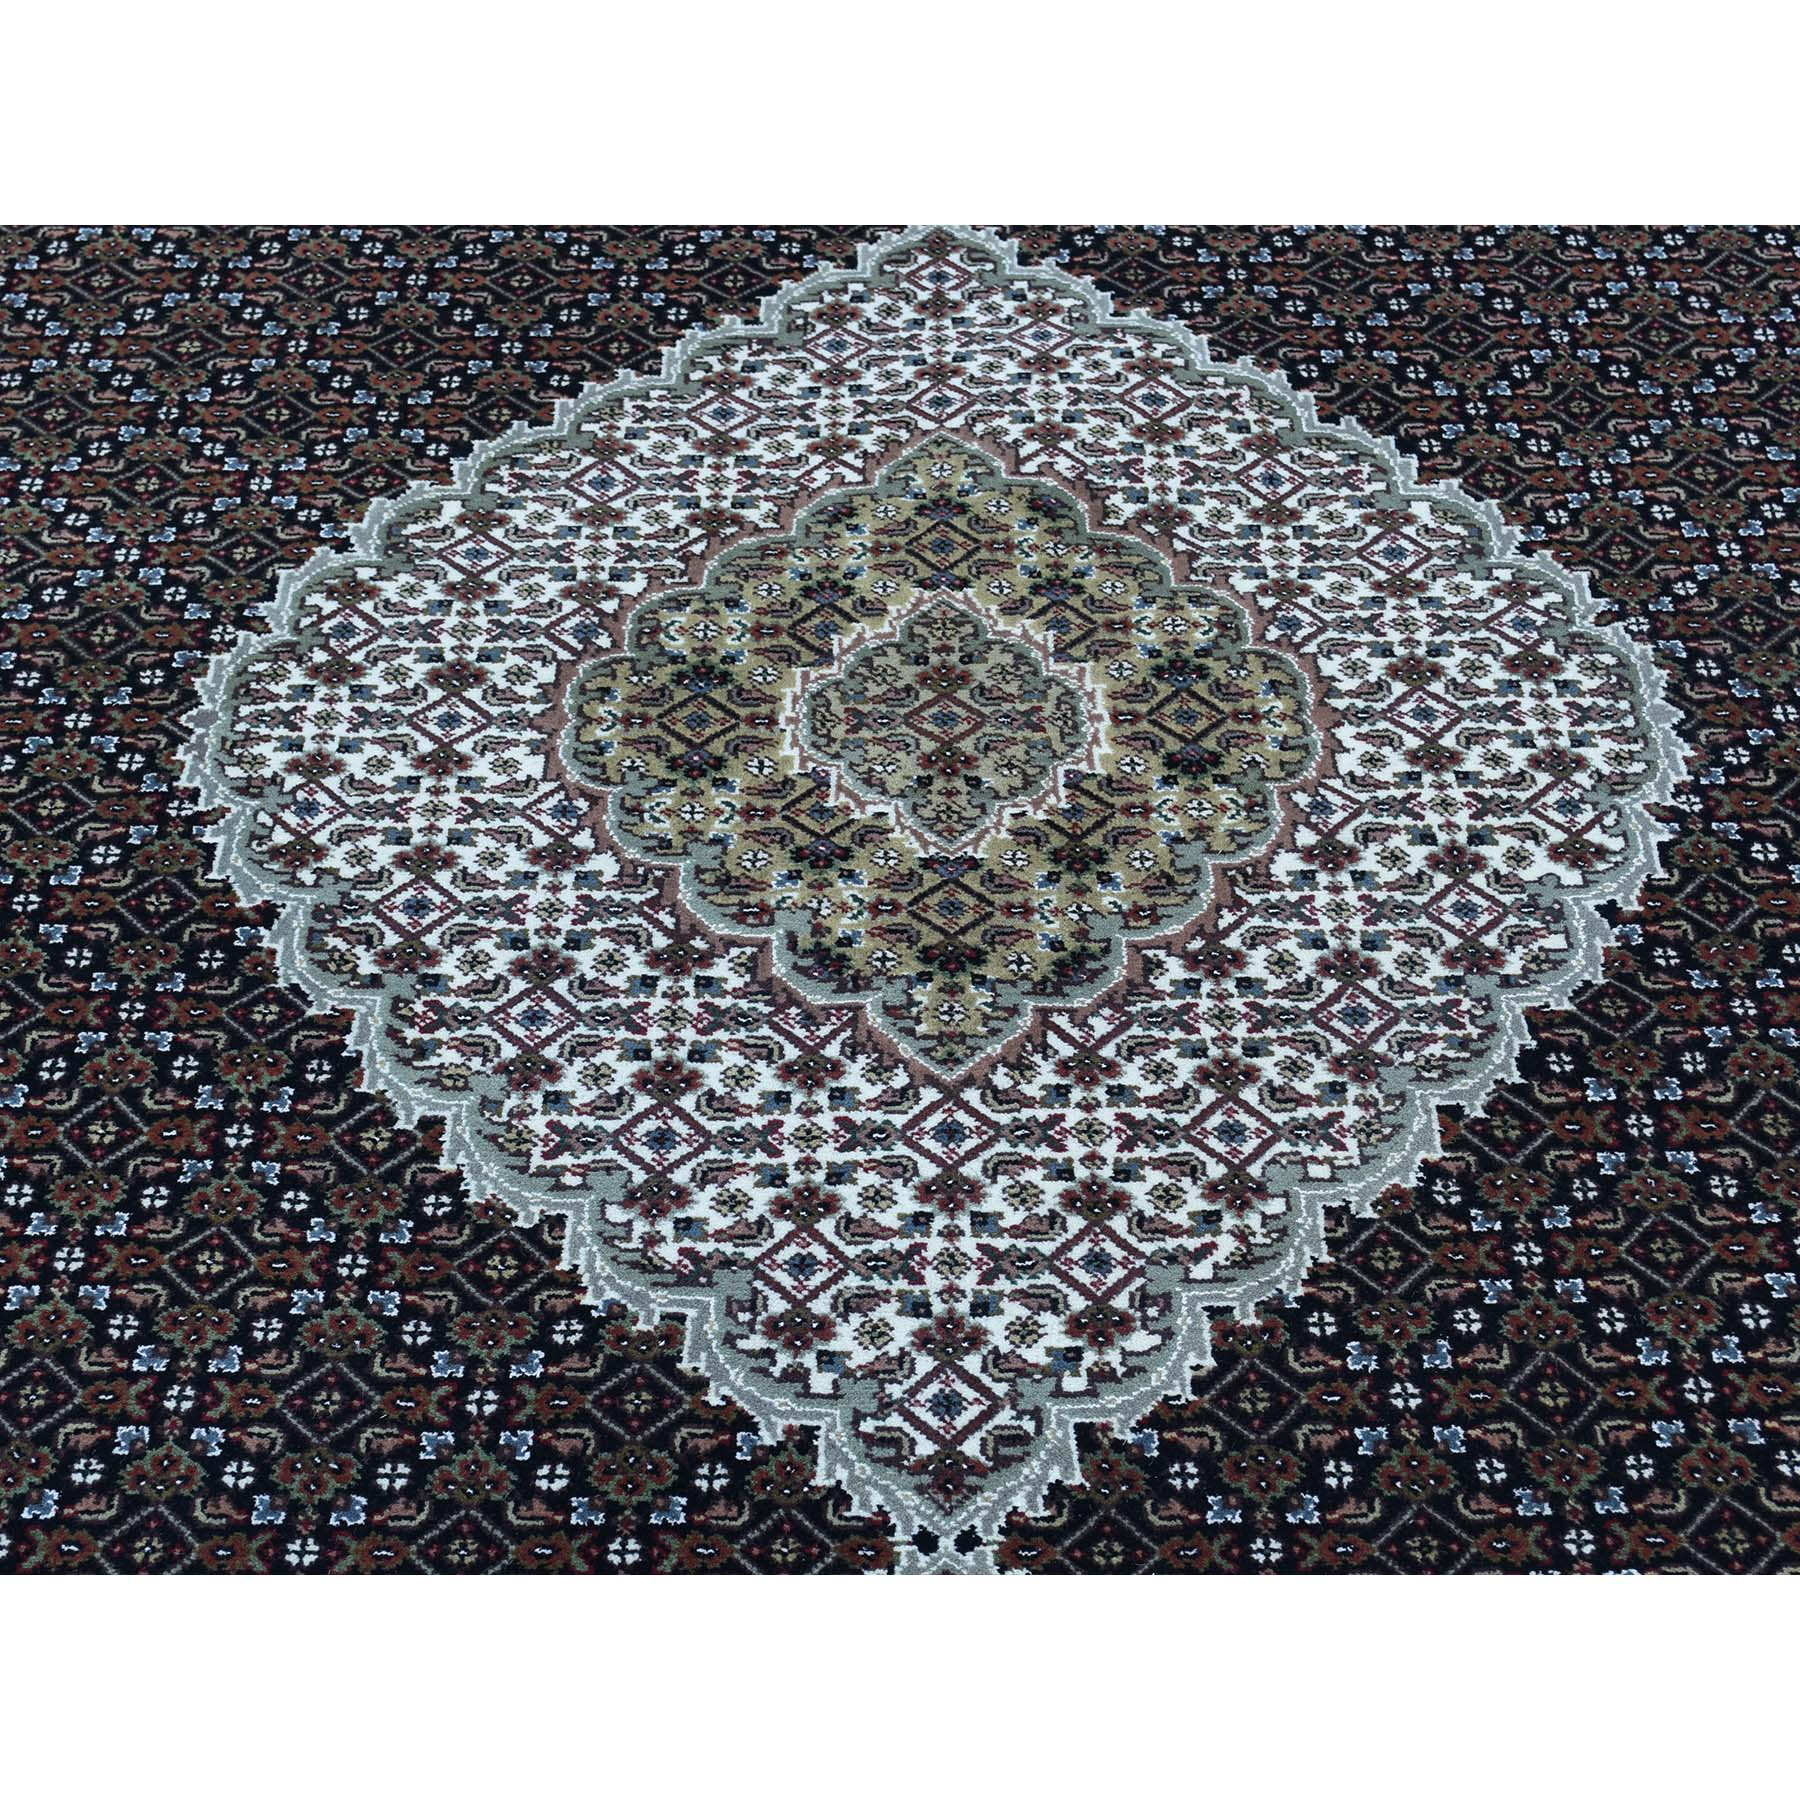 9-x18-1  Hand-Knotted Wool and Silk Tabriz Mahi Wide Gallery Size Rug